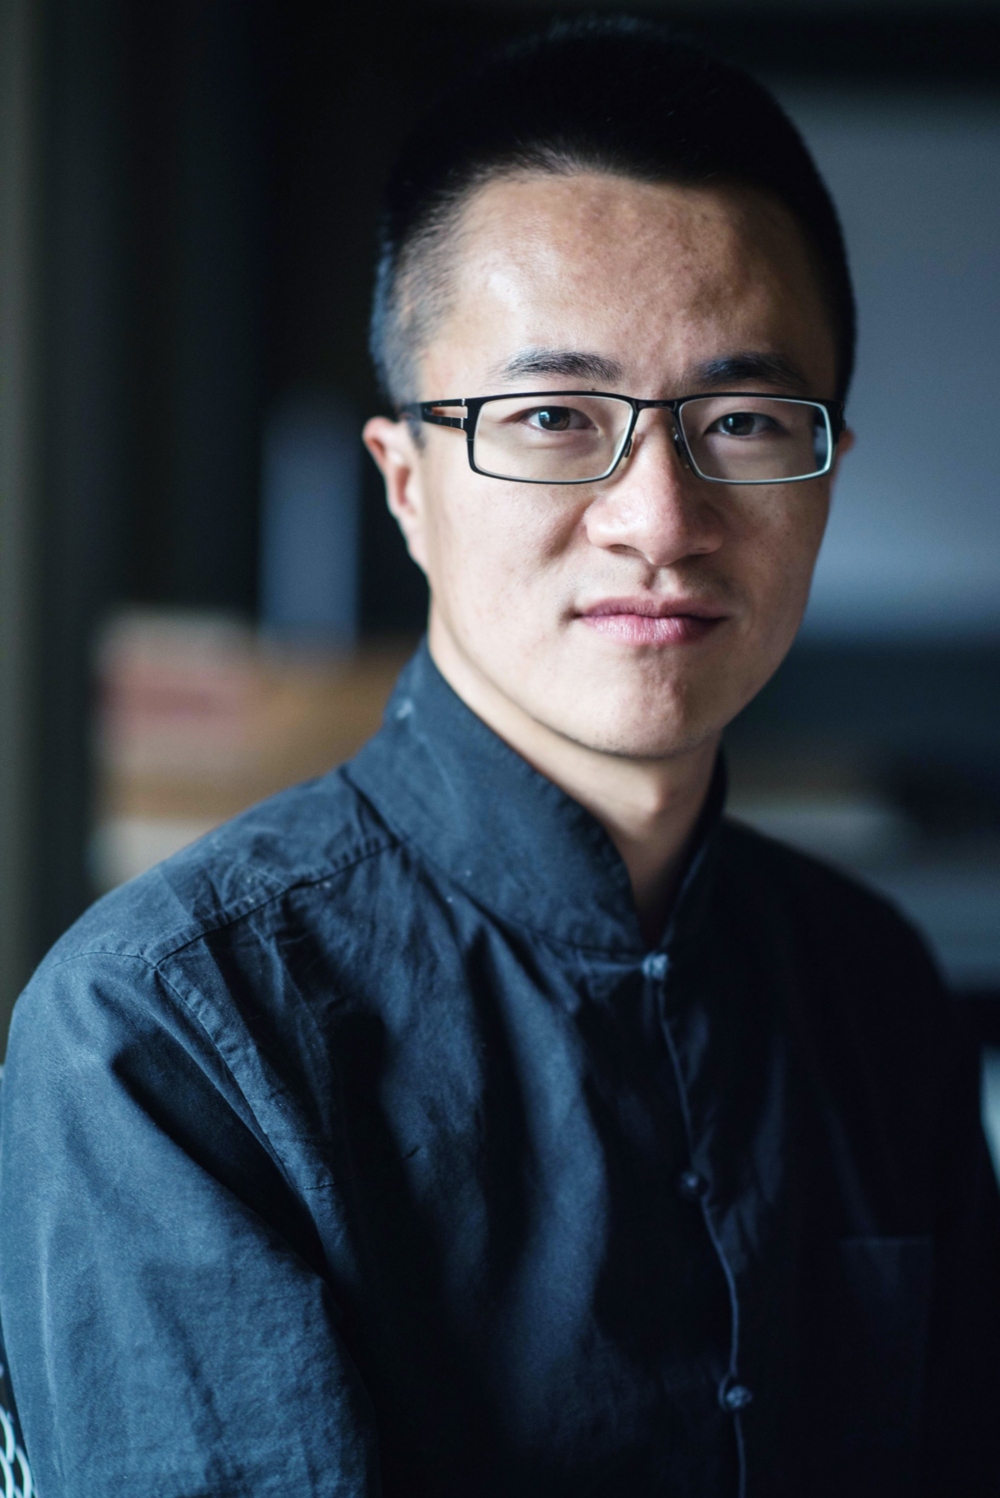 Xuhui Zhang, architectural design: Xuhui grew up in Beijing, received a B.Arch at Tsinghua University, and then received a M.Arch at Cornell.